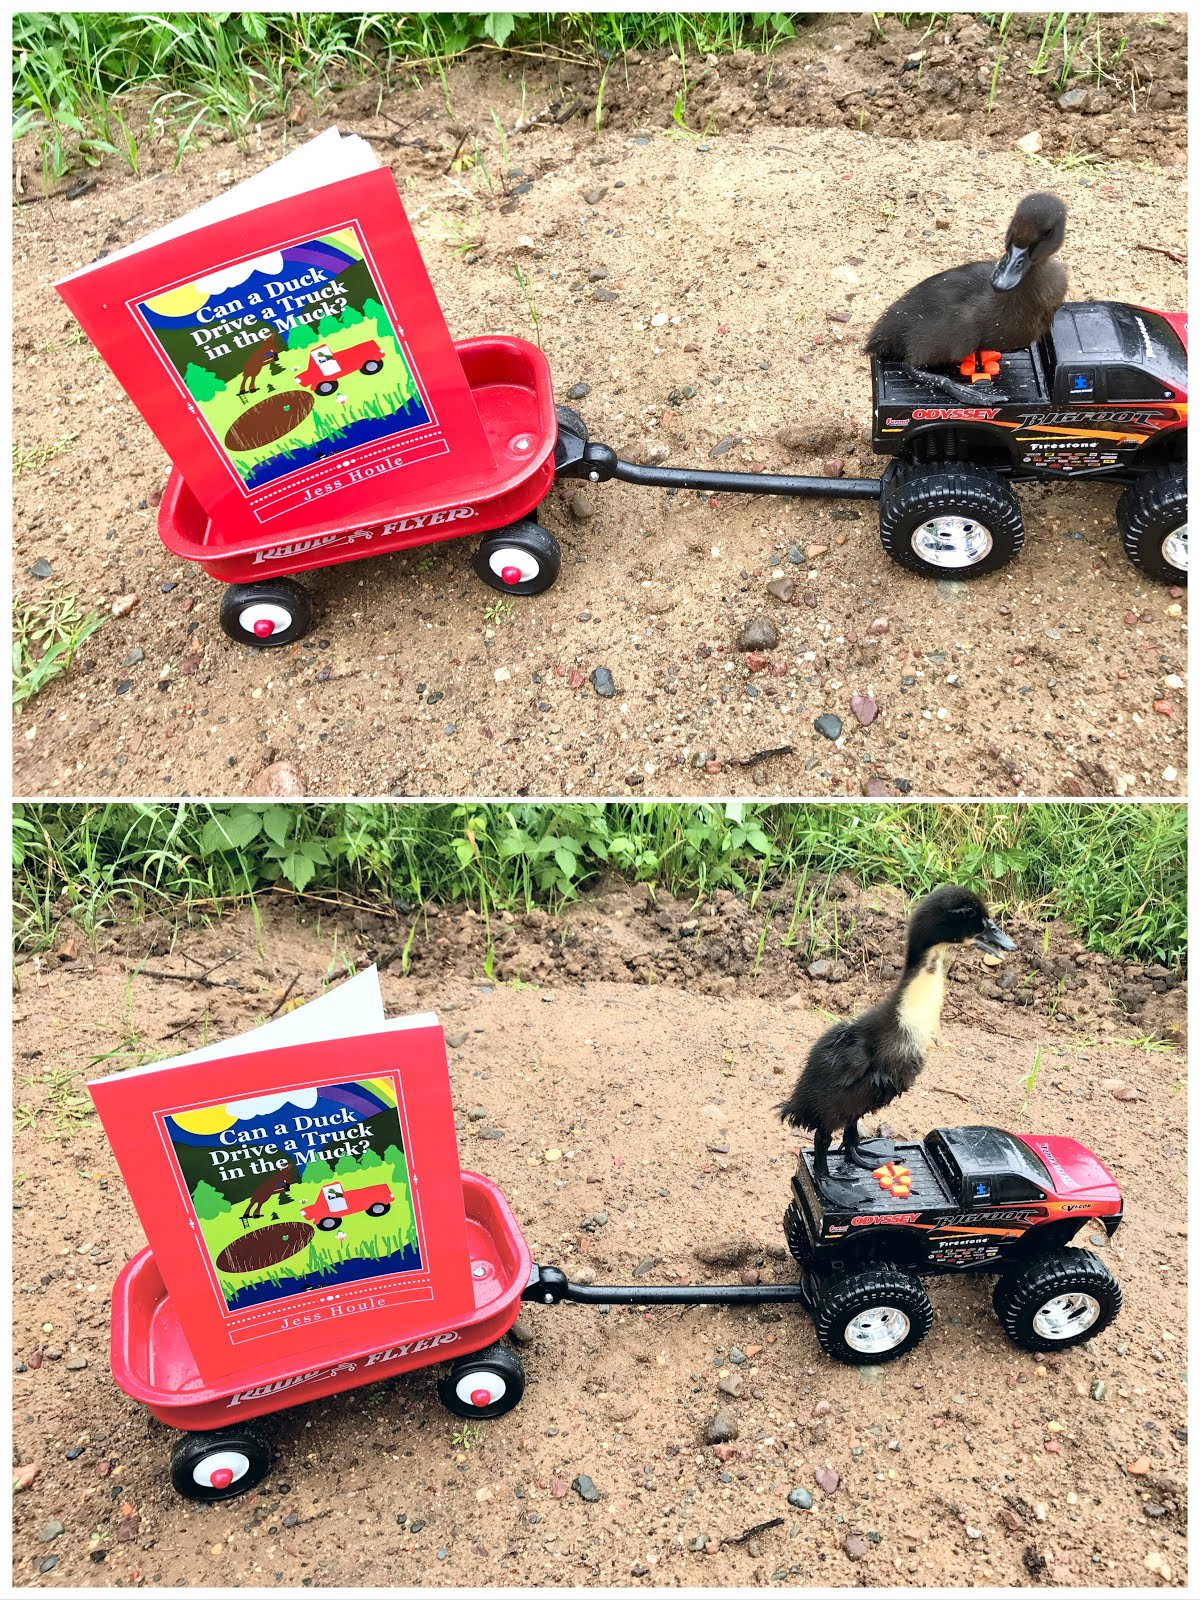 Can a Duck Drive a Truck in the Muck?